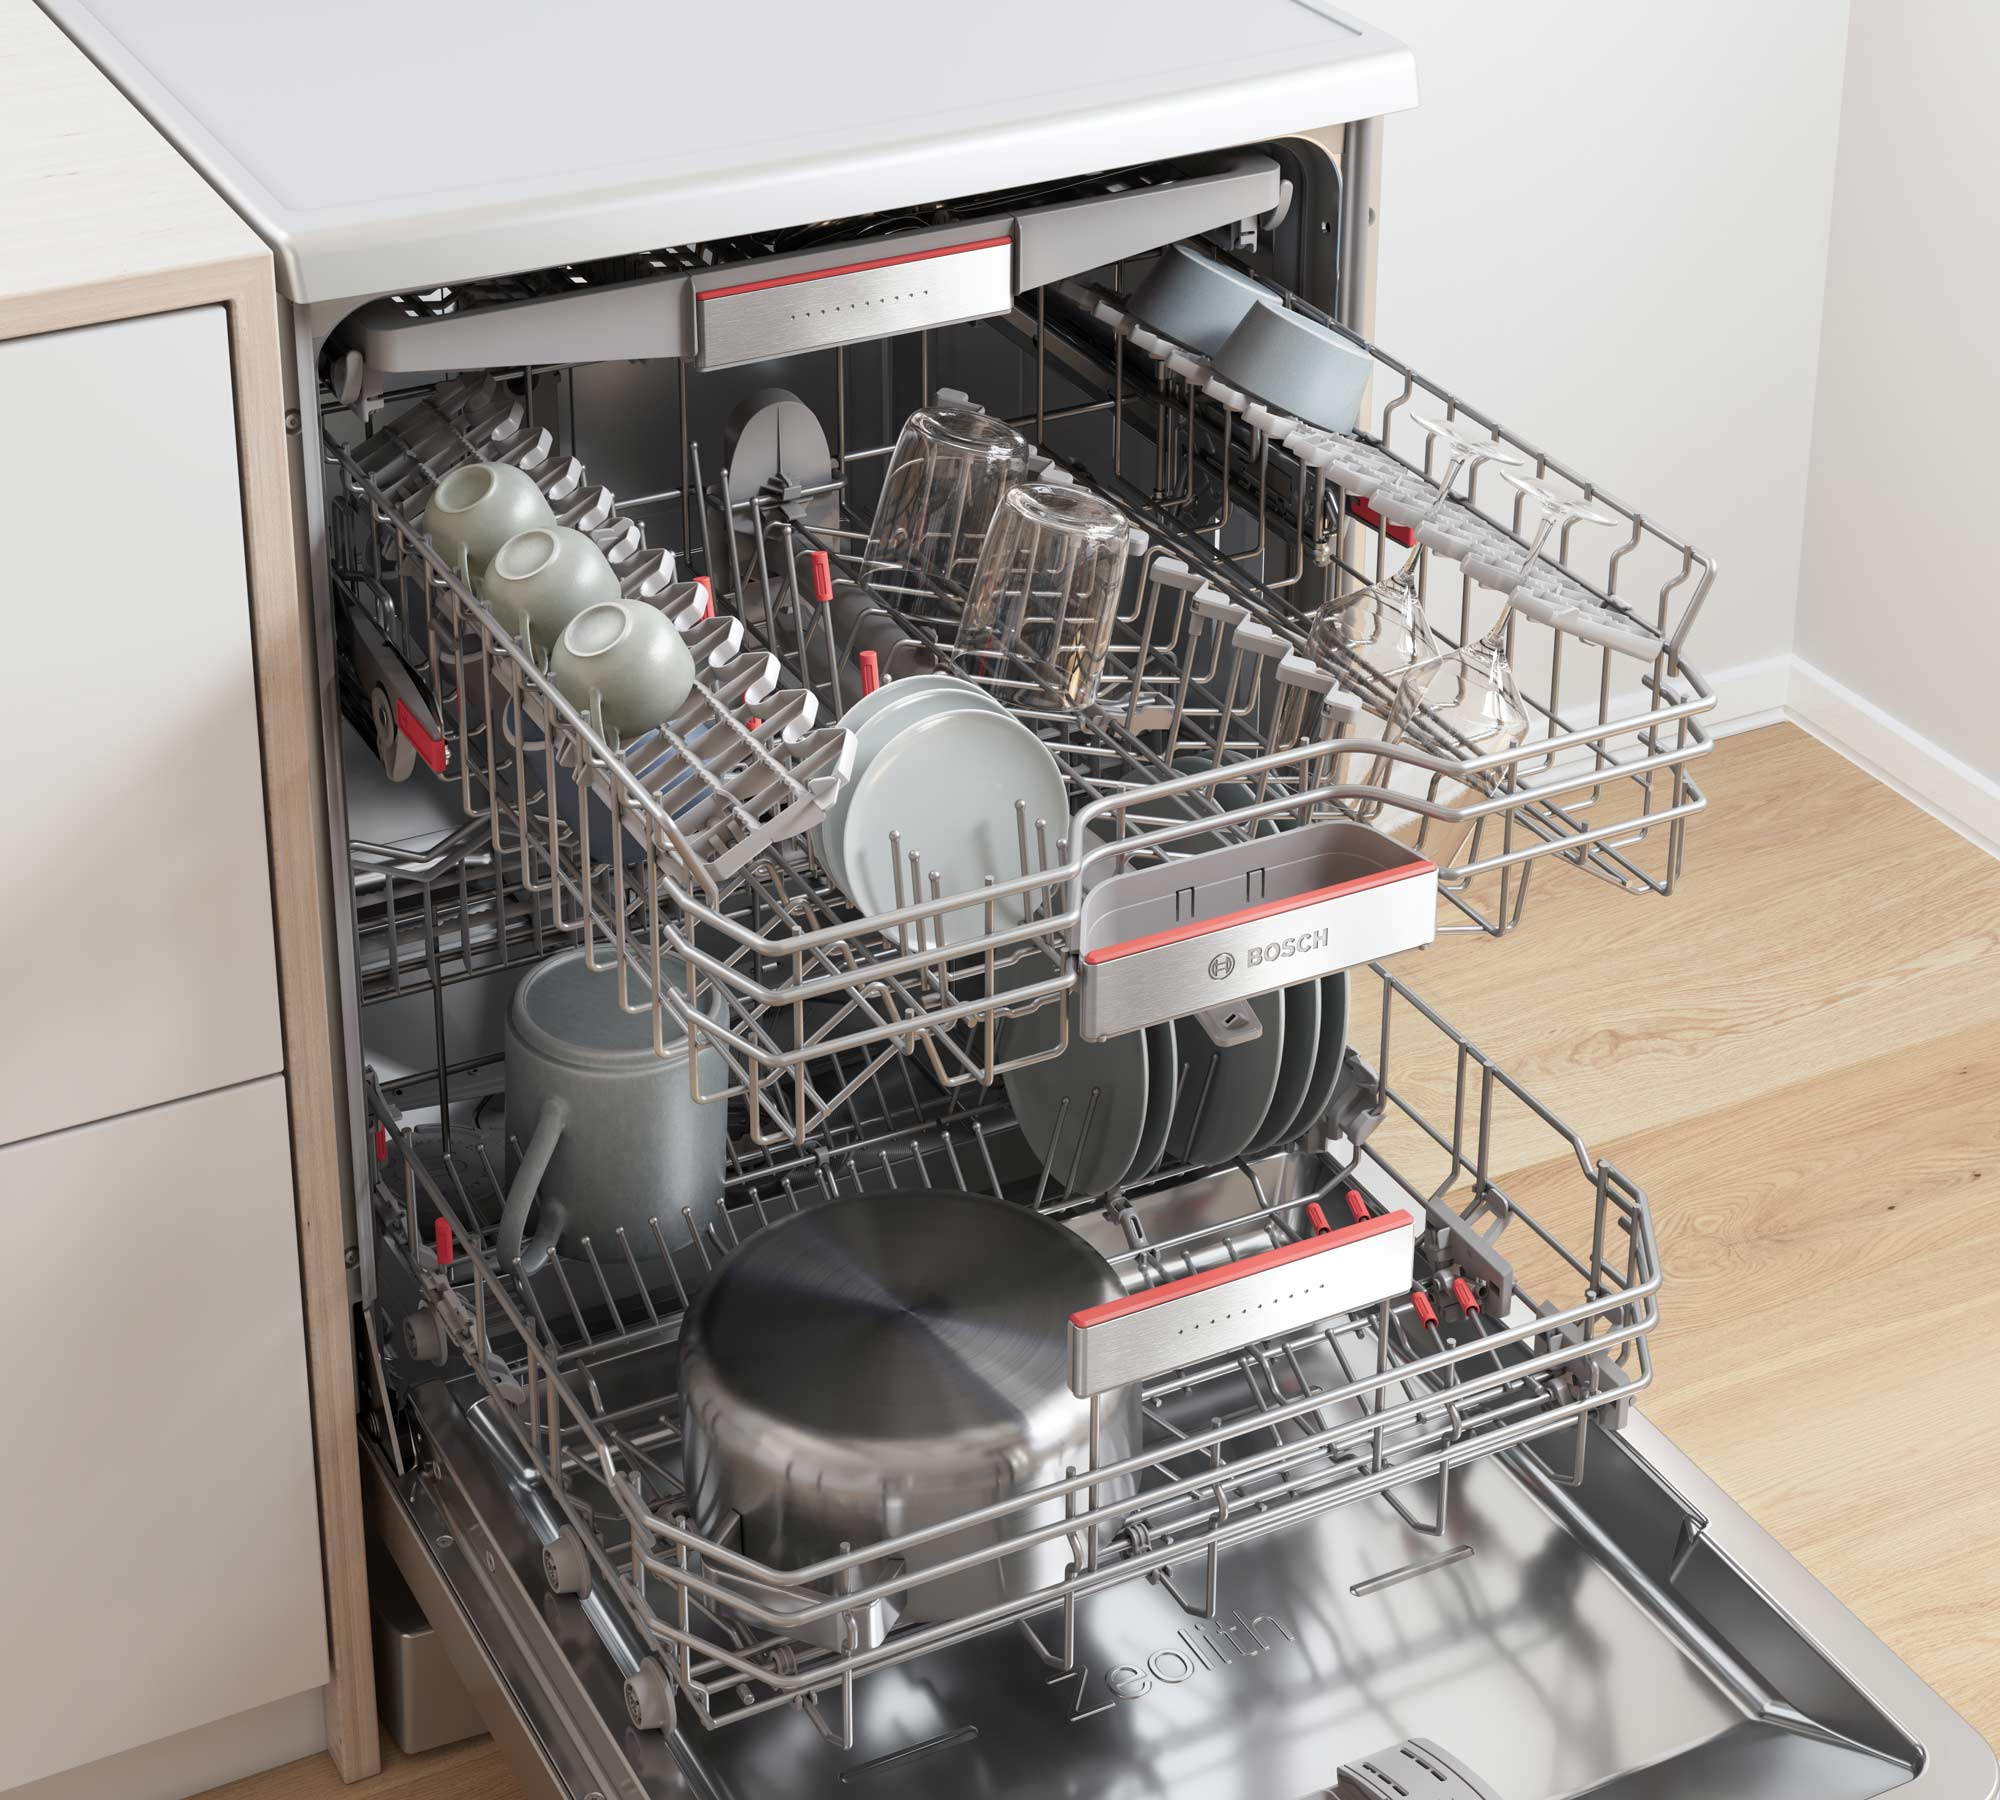 CGI - Bosch - Home Appliances - Freestanding Dishwasher - Close up